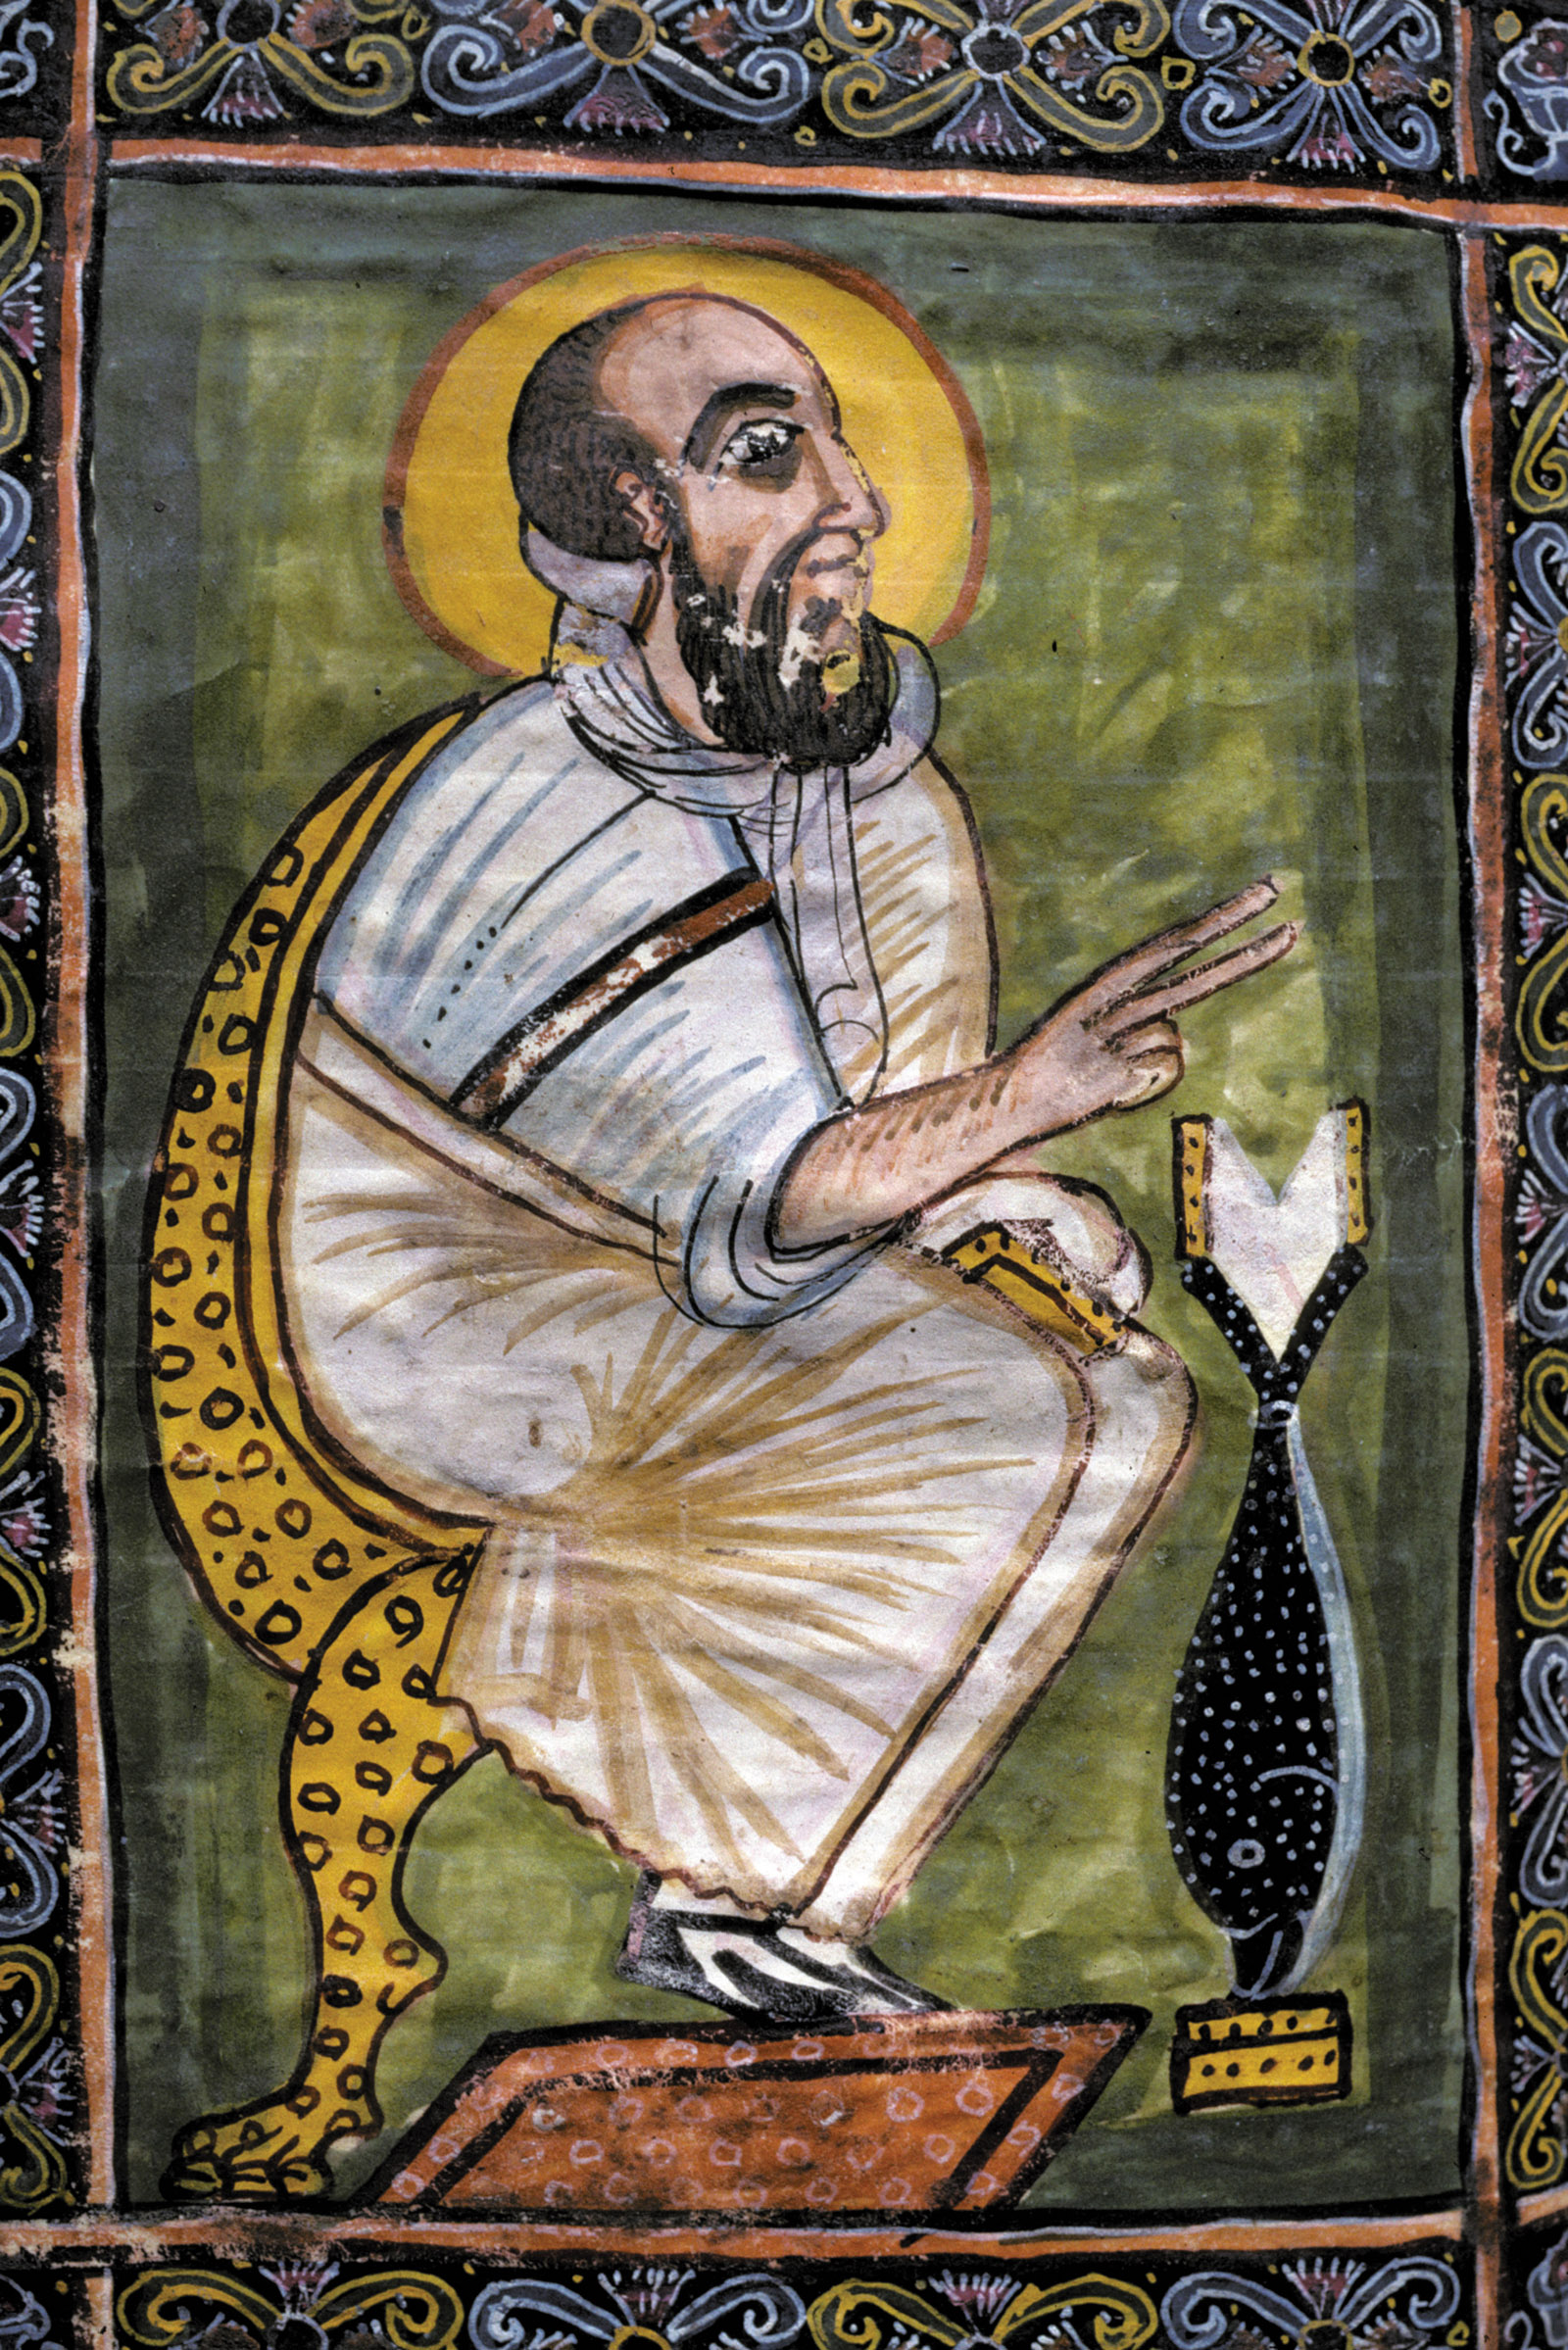 Mark the Evangelist; illustration from the Garima Gospels, late fifth or sixth century CE. As Peter Brown writes, the discovery of the gospels at the Ethiopian monastery of Abba Garima confirms G.W. Bowersock's emphasis in The Crucible of Islam on the importance of the kingdom of Axum, to which early Muslims fled for protection in about 615.